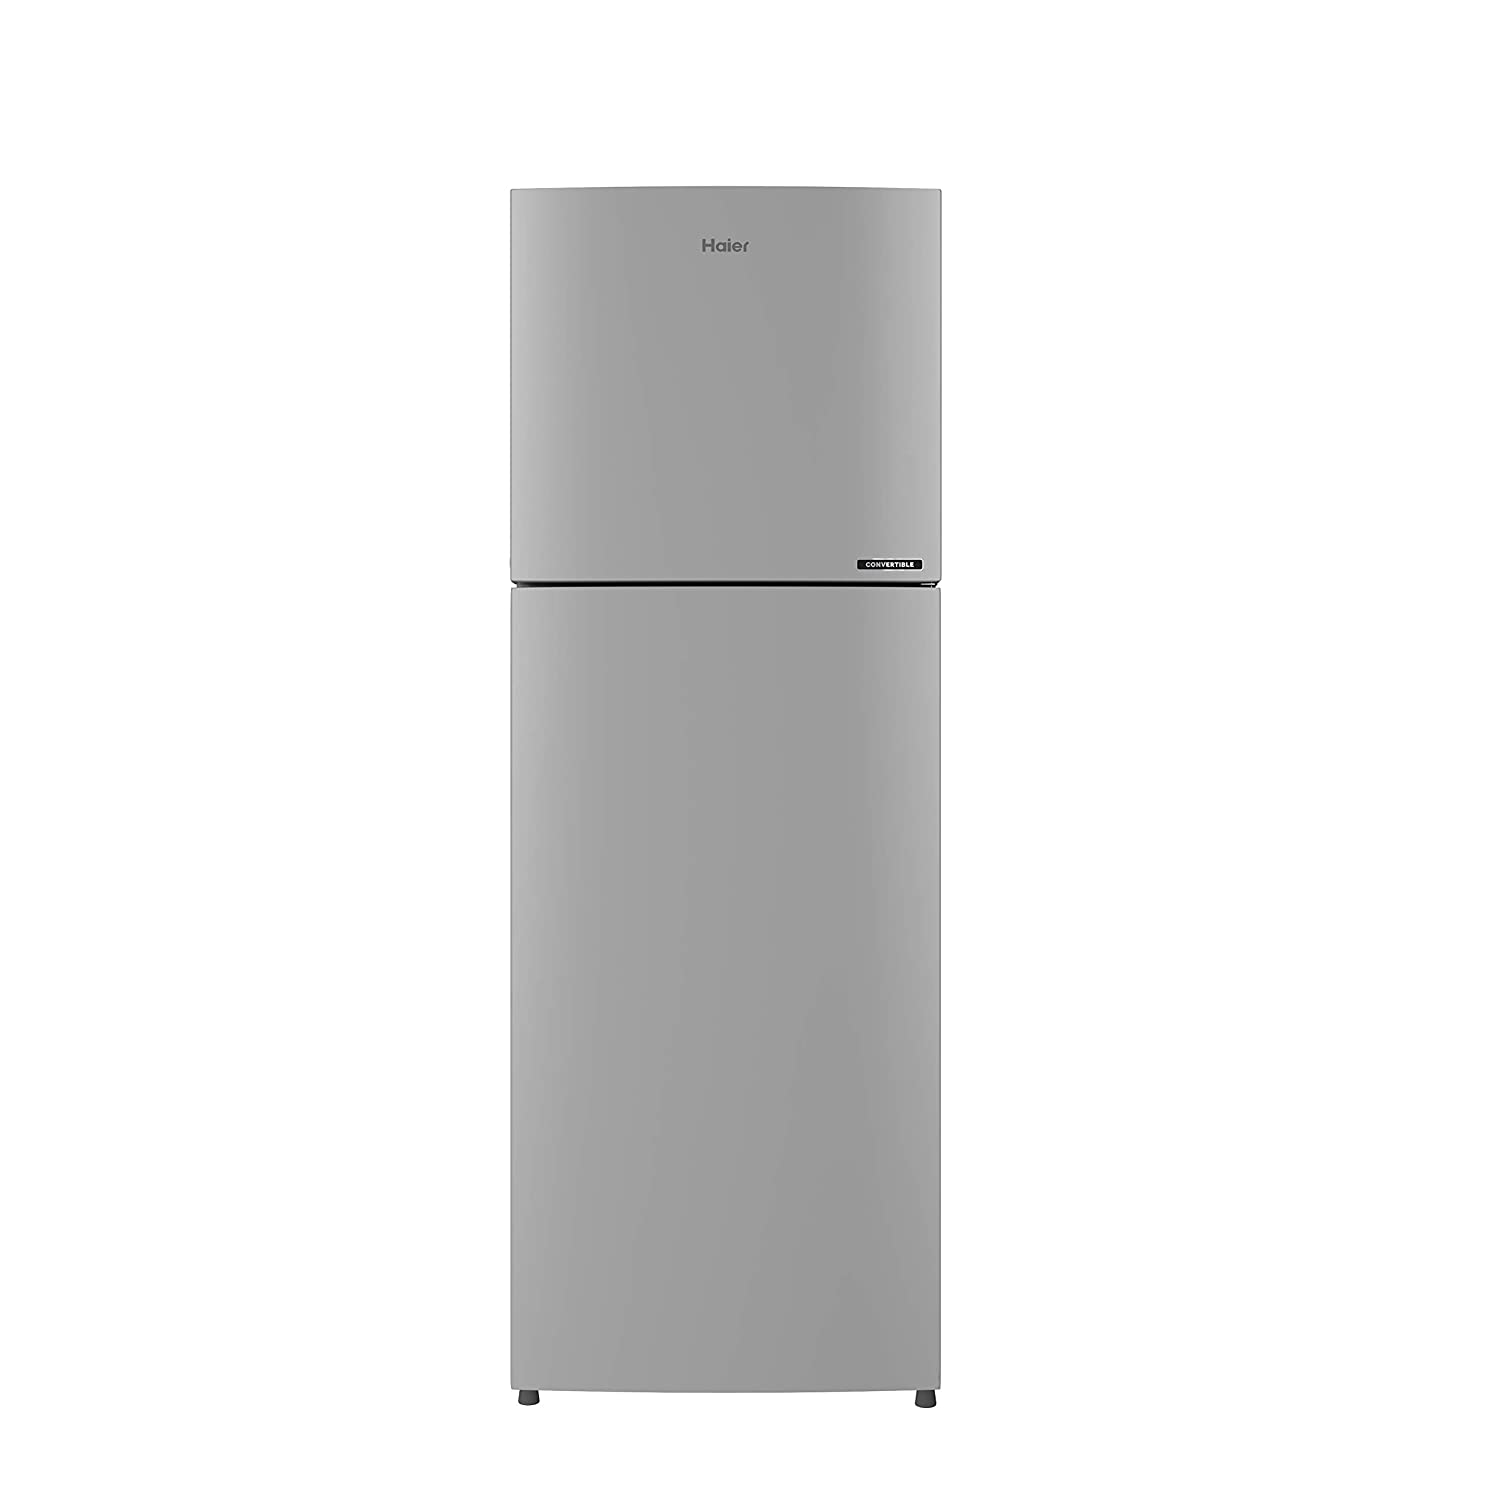 Haier 278 L 3 Star Inverter Frost-Free Double Door Refrigerator – HEF-27TMS-E